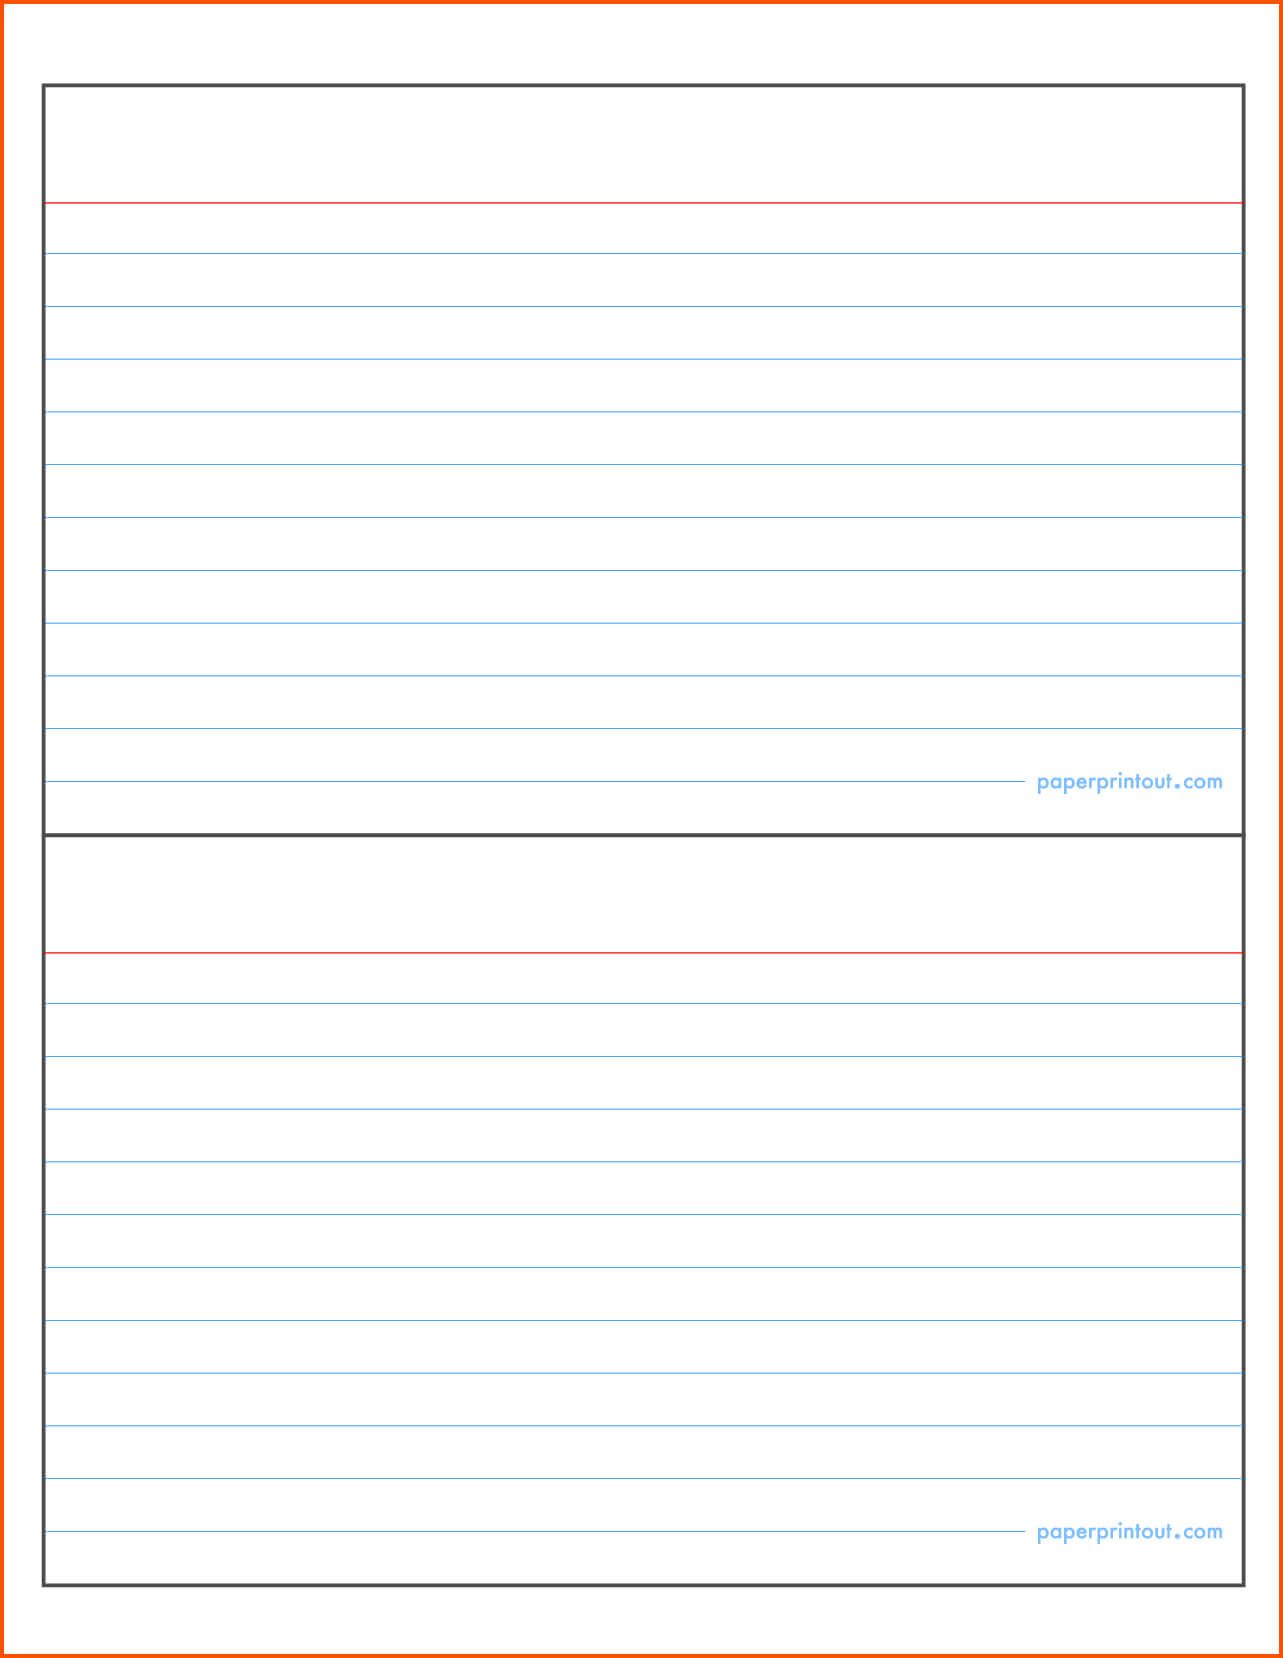 002 Template Ideas Note Card Word Index Cards 127998 Regarding 4X6 Note Card Template Word